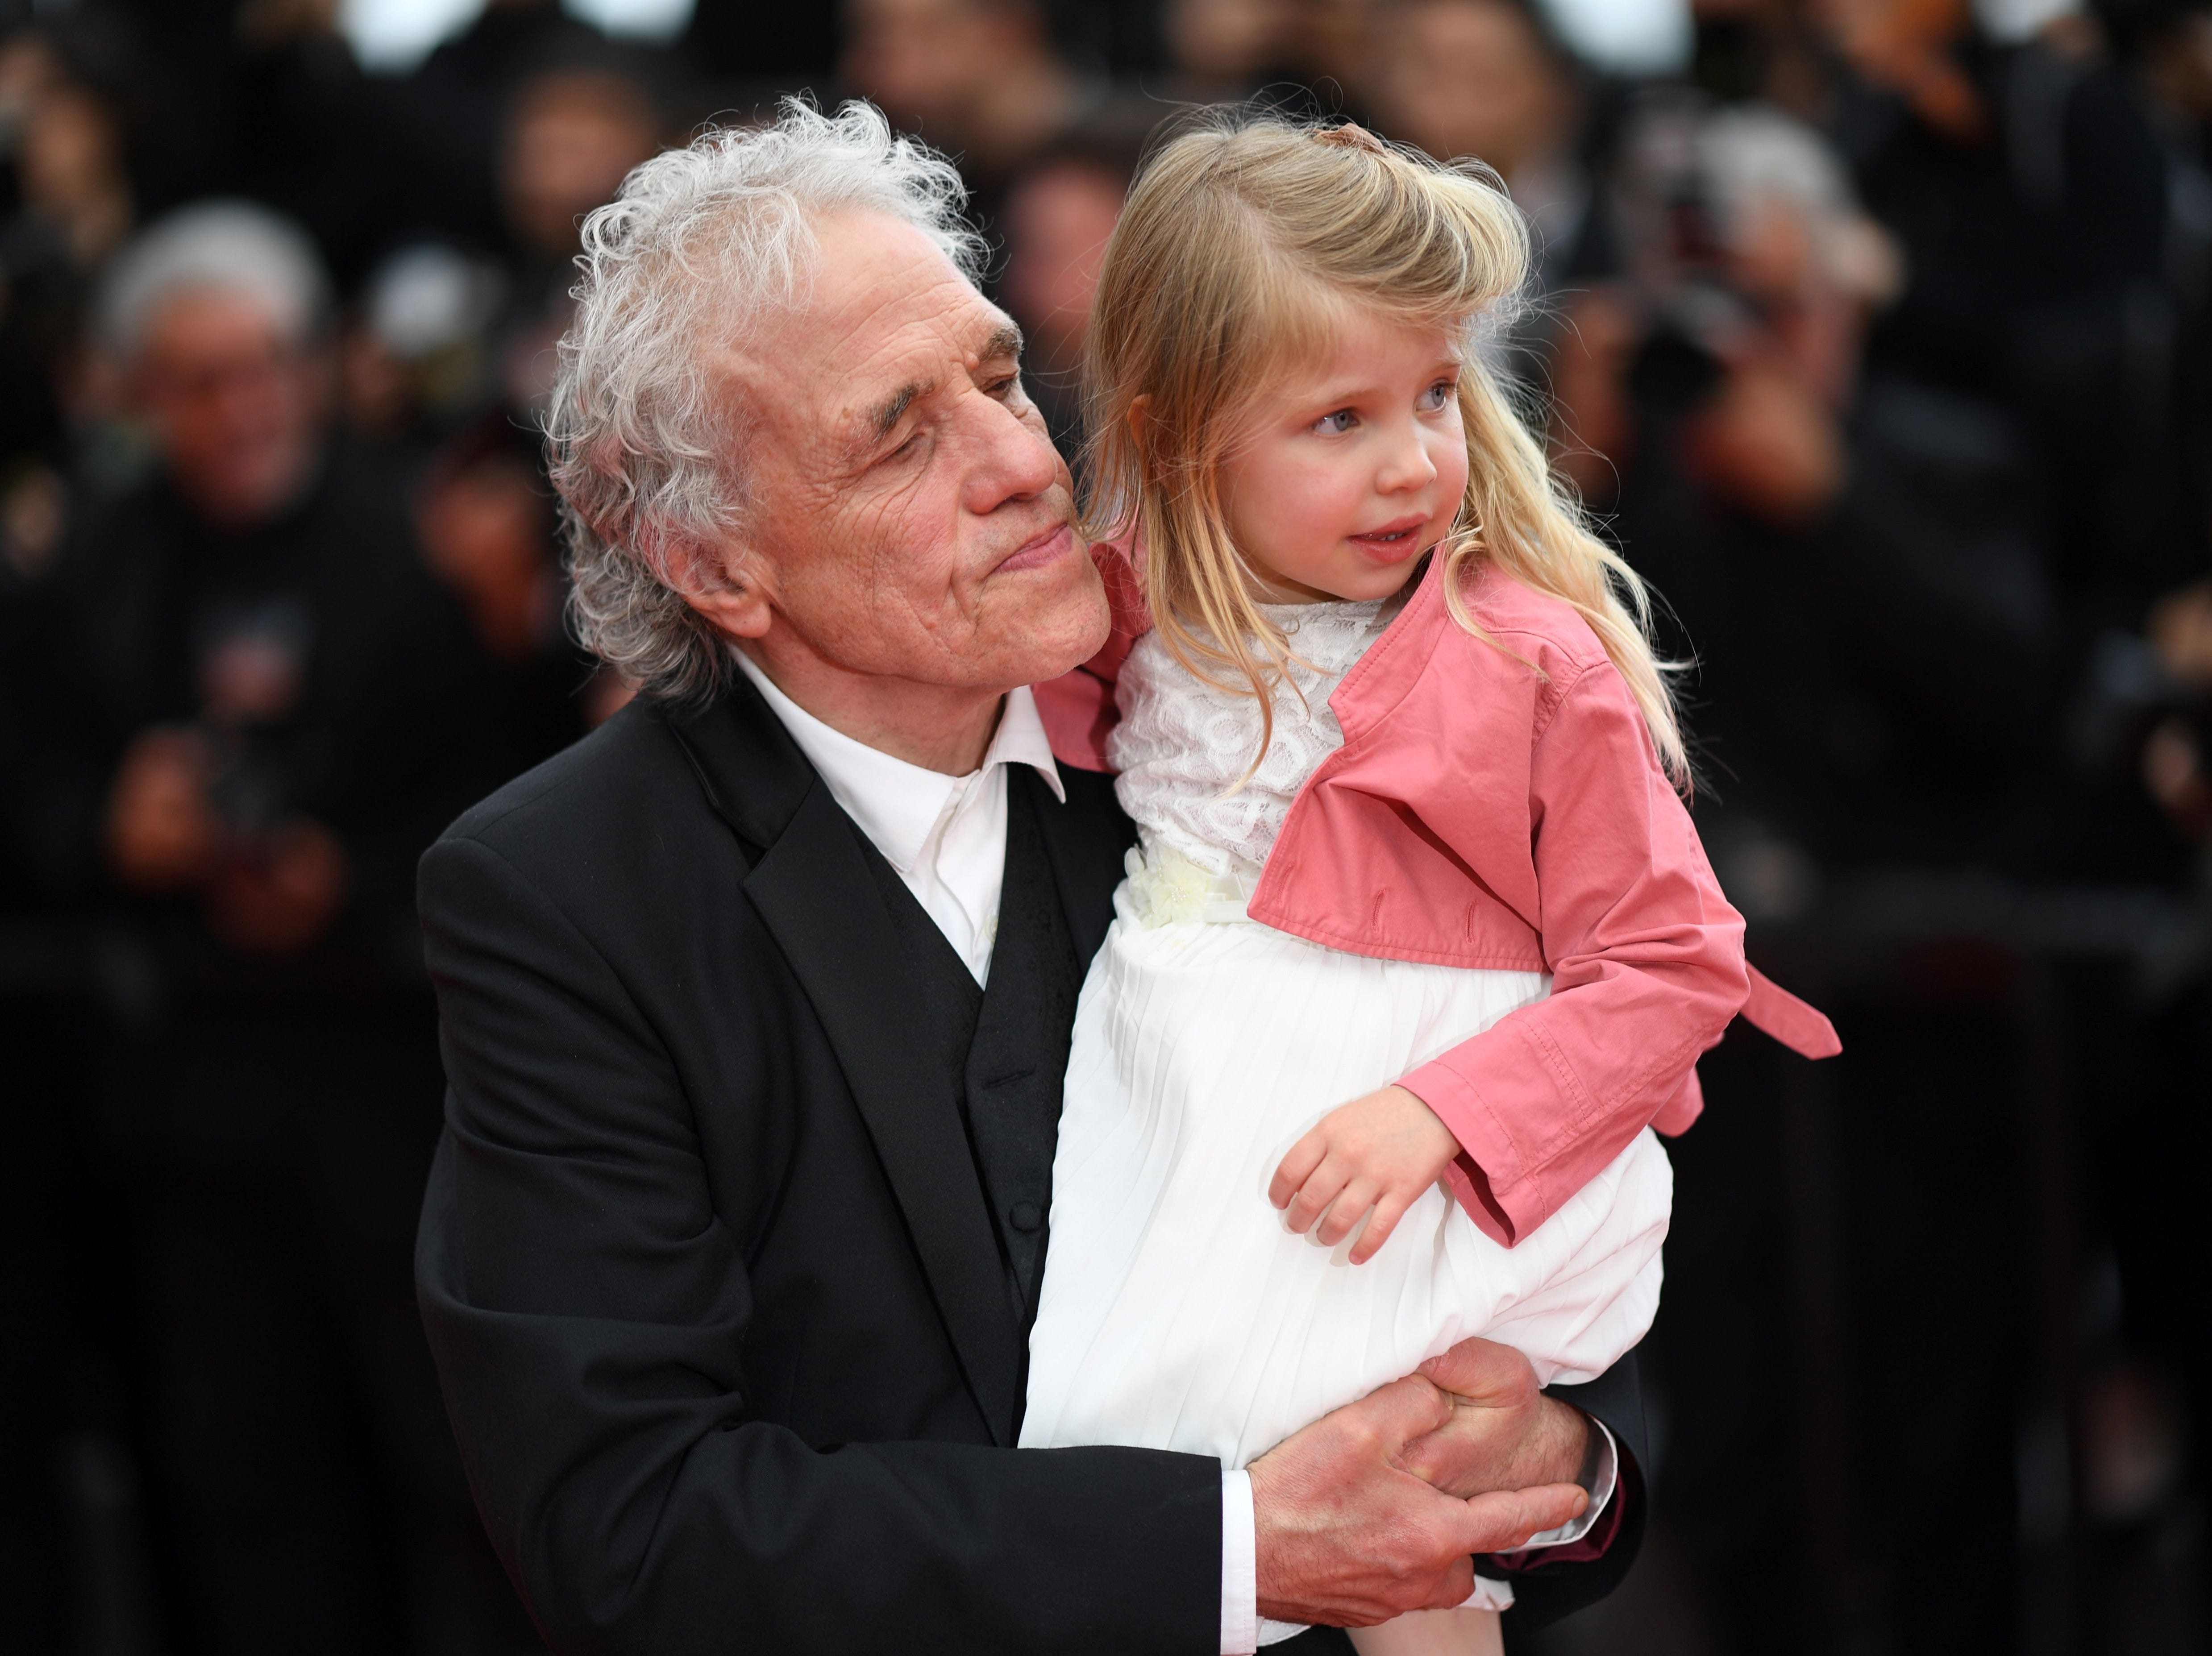 """Director Abel Ferrara arrives with his daughter Anna Ferrara for the screening of film """"Tommaso"""" at the 72nd edition of the Cannes Film Festival in Cannes, France."""